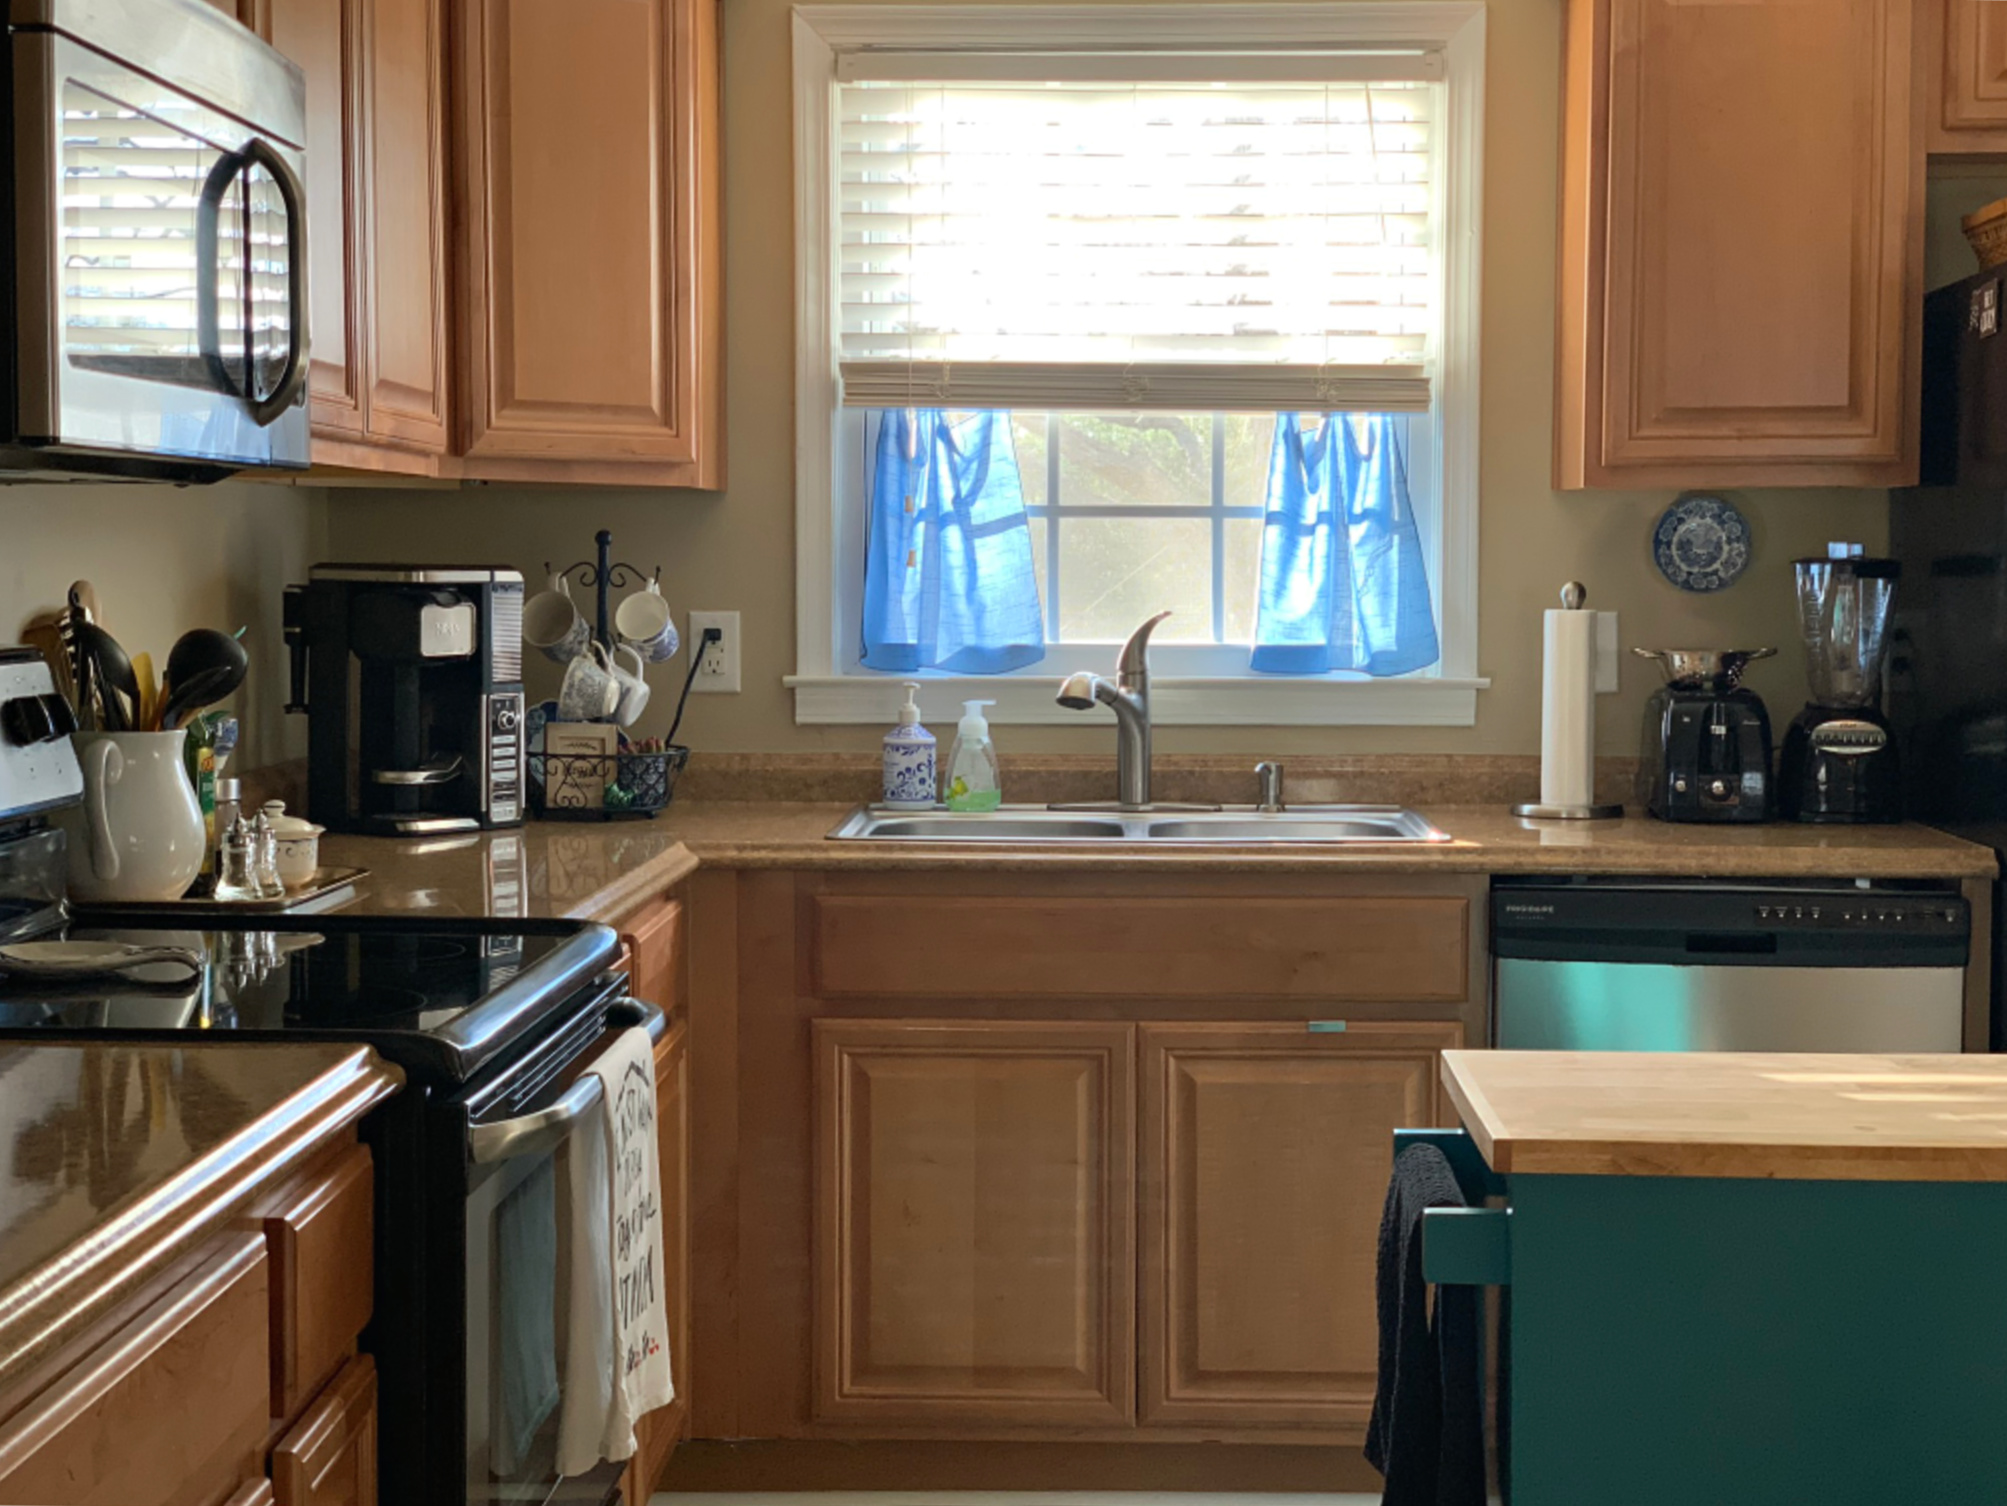 Blue And White Kitchen Update Loving The Home You Have Come For Comfort